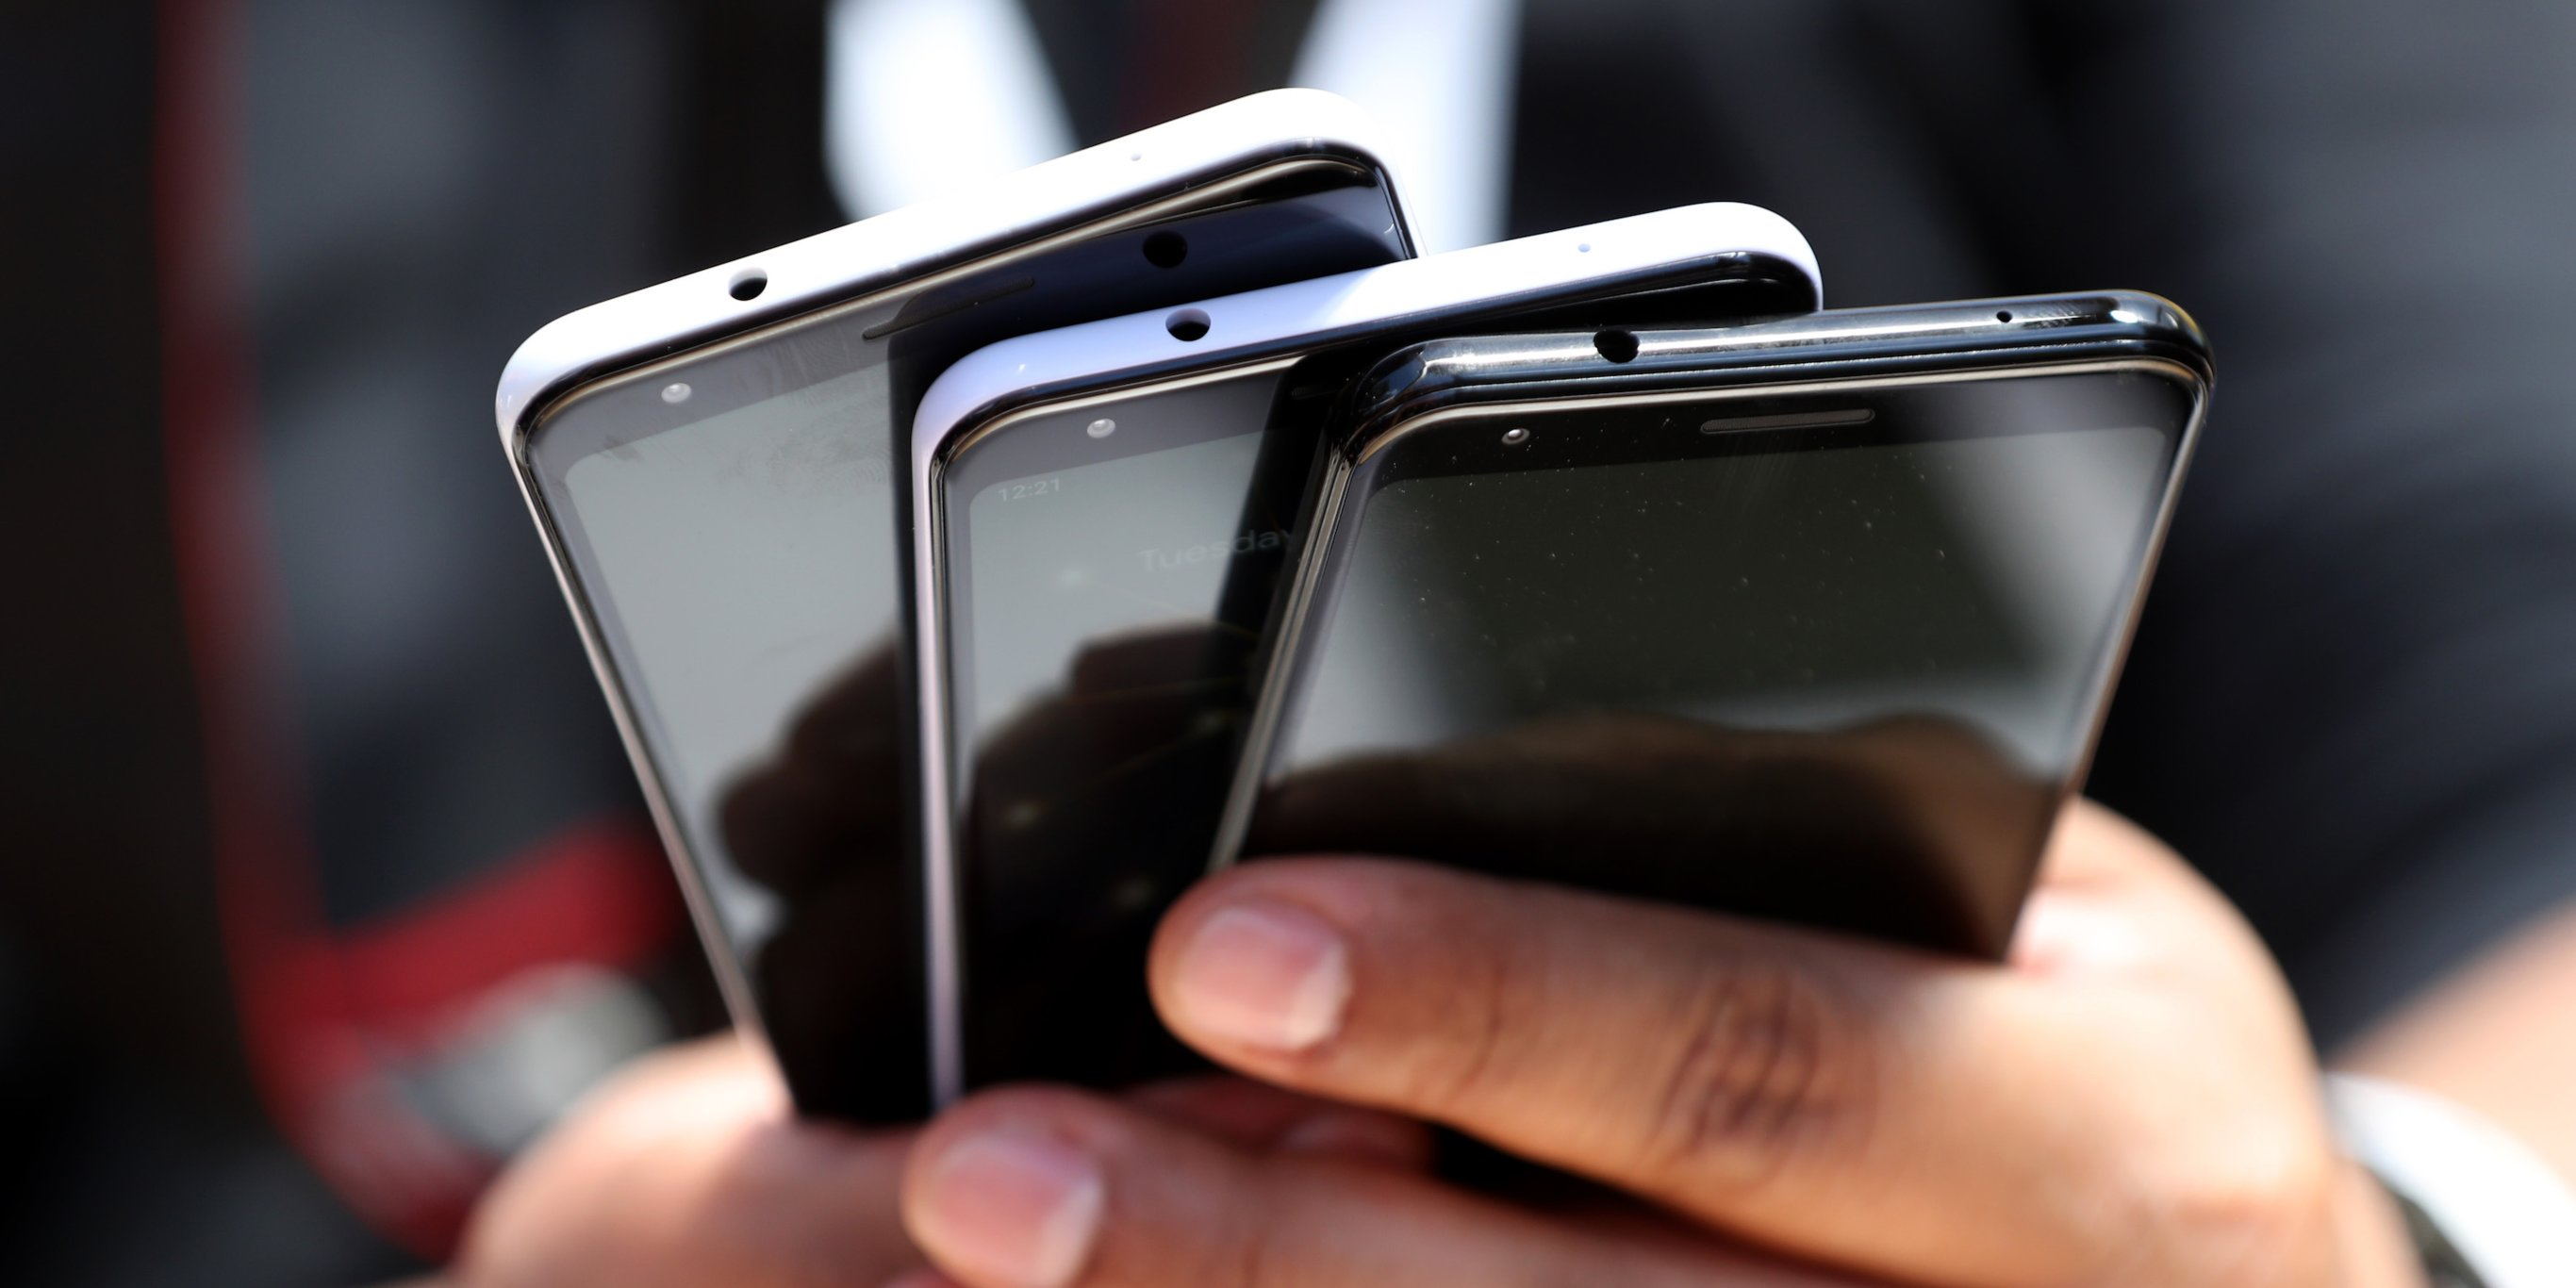 Google has adopted the smartphone formula that made Apple's iPhone so successful in the first place (GOOG, GOOGL, AAPL)